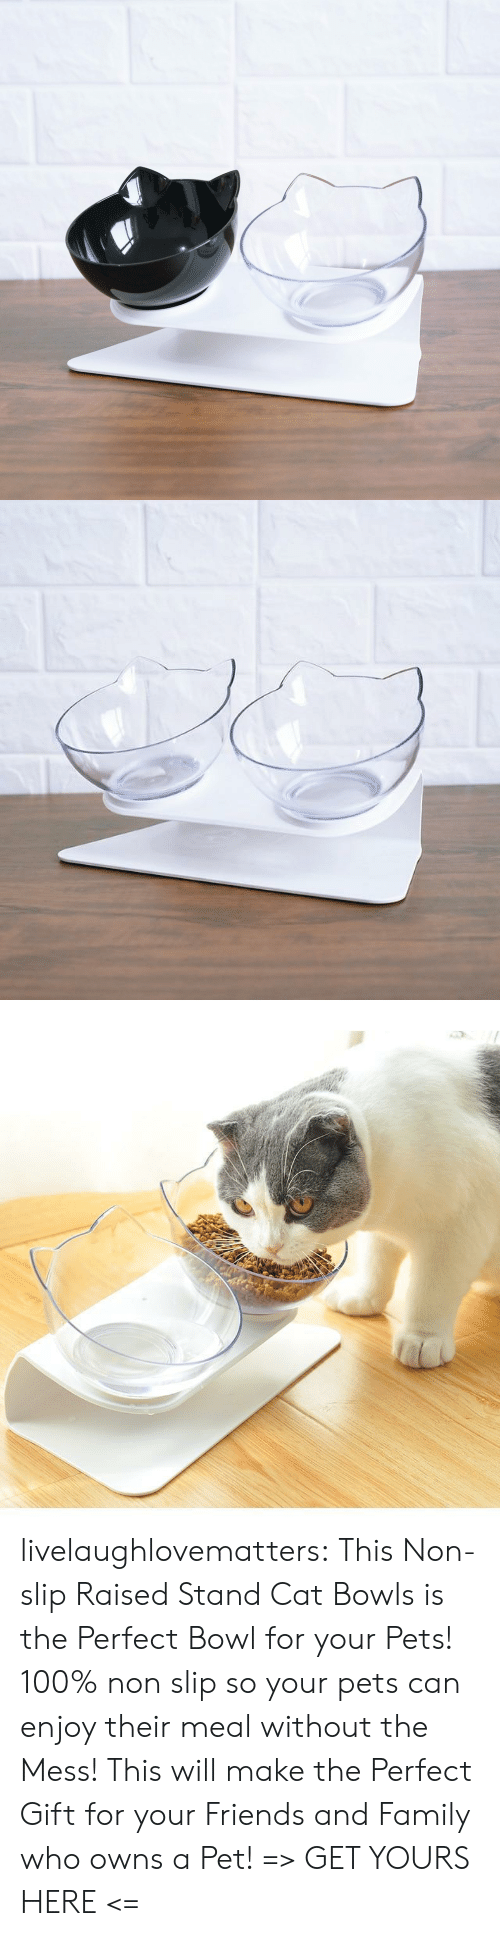 Family, Friends, and Tumblr: livelaughlovematters: This Non-slip Raised Stand Cat Bowls is the Perfect Bowl for your Pets! 100% non slip so your pets can enjoy their meal without the Mess! This will make the Perfect Gift for your Friends and Family who owns a Pet! => GET YOURS HERE <=